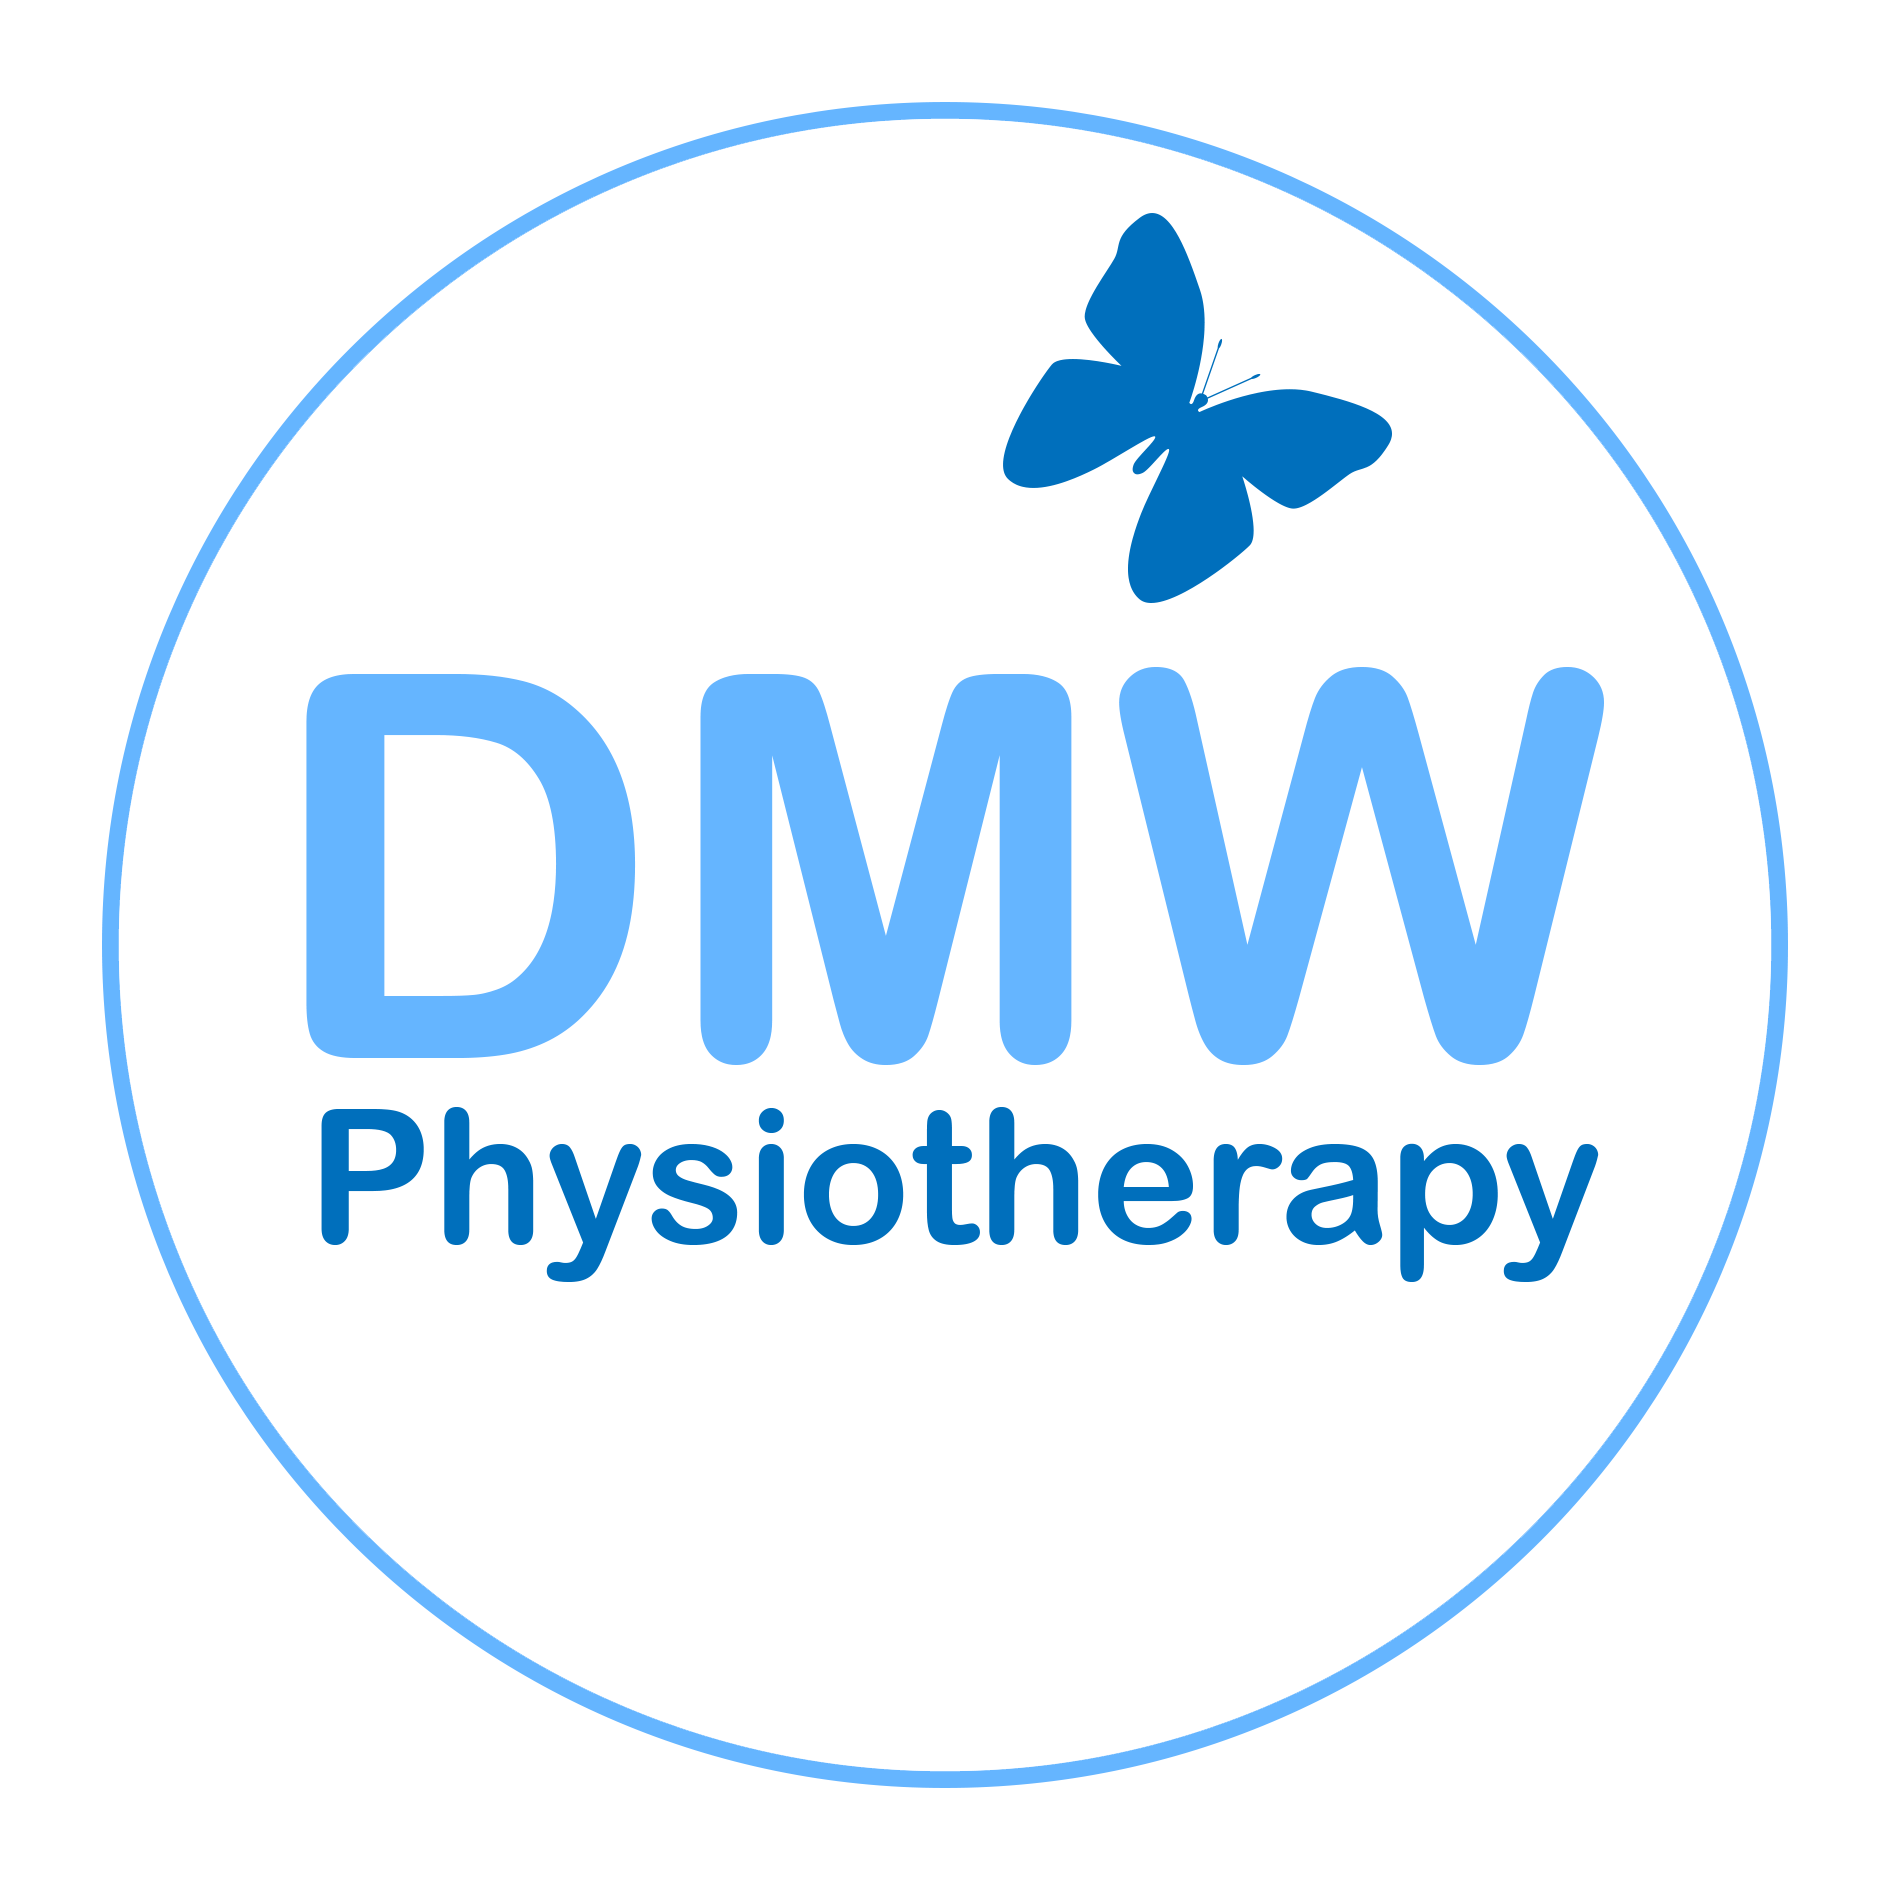 Diane Wootton Physiotherapy